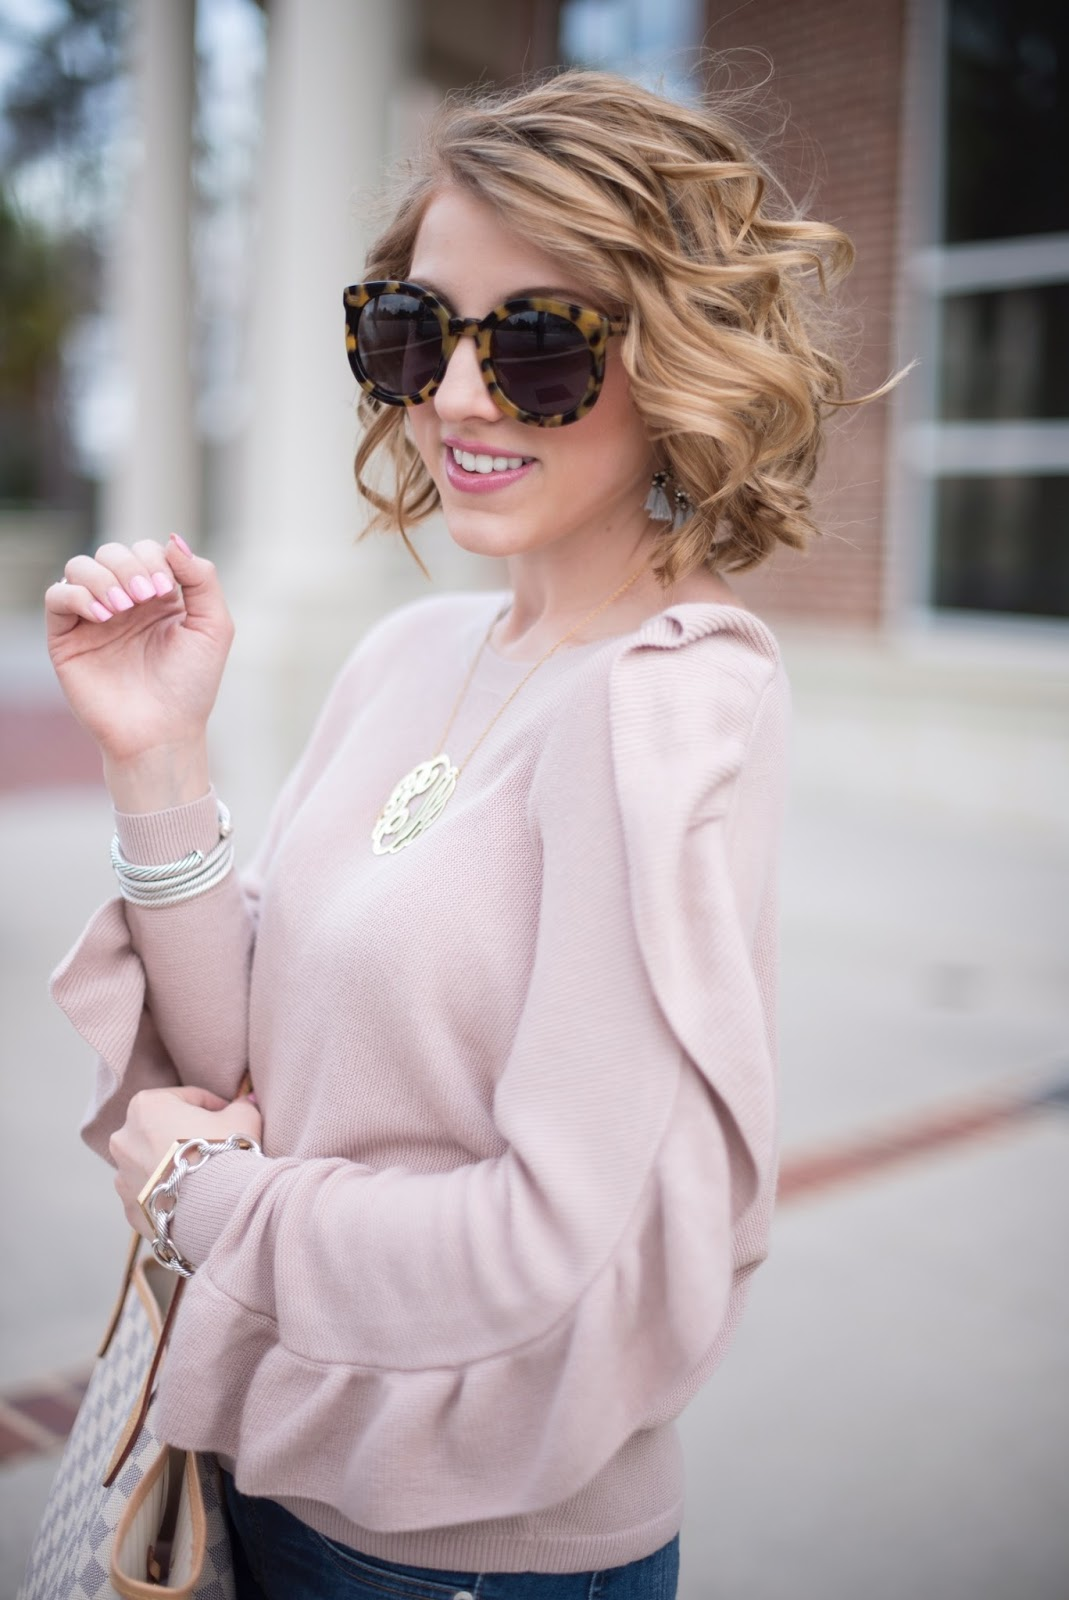 Karen Walker Sunglasses - Something Delightful Blog